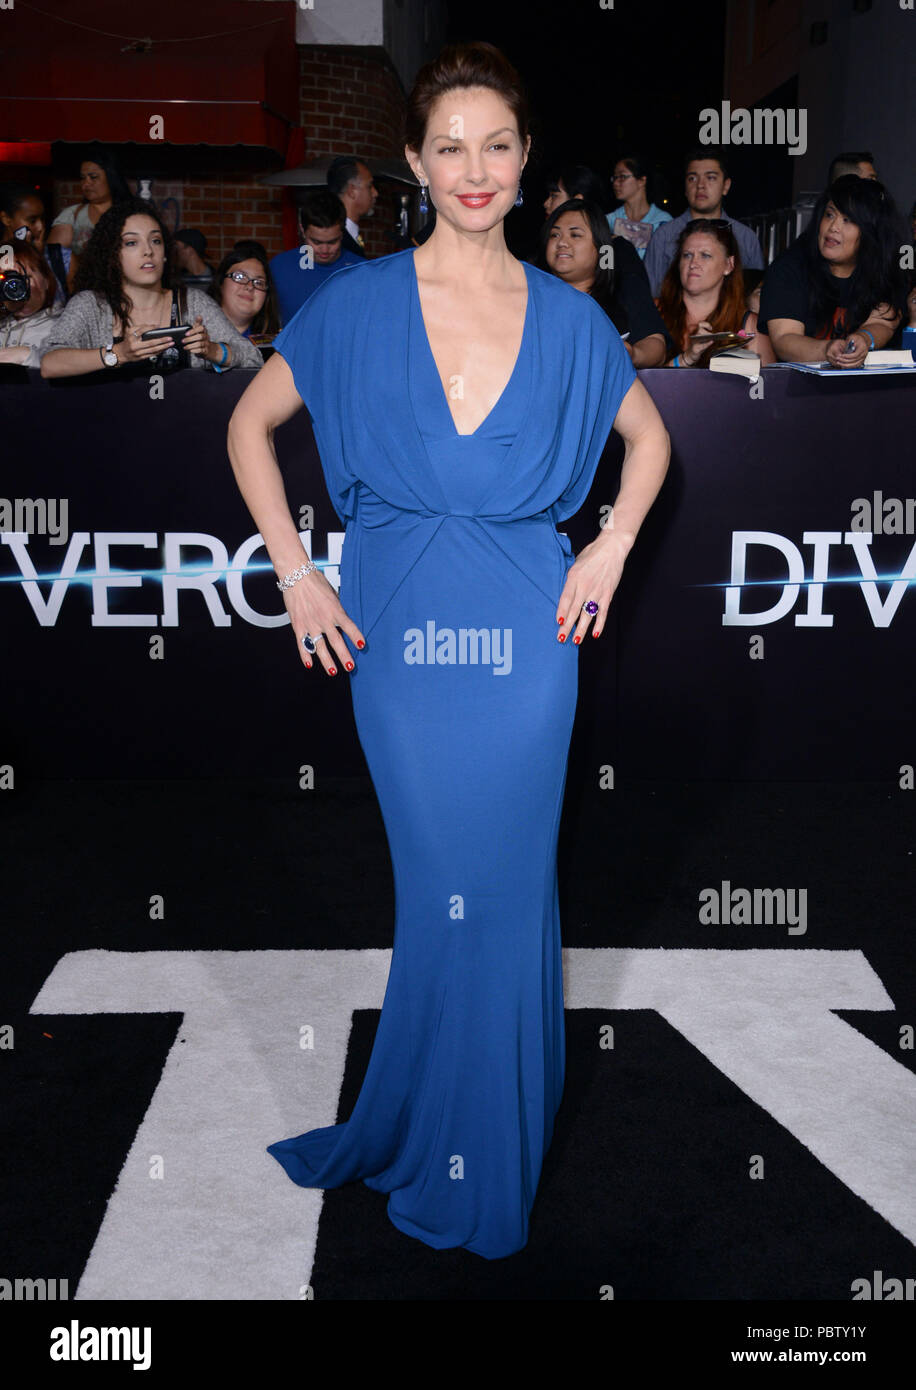 Ashley Judd 116 at the Divergent Premiere at the Westwood